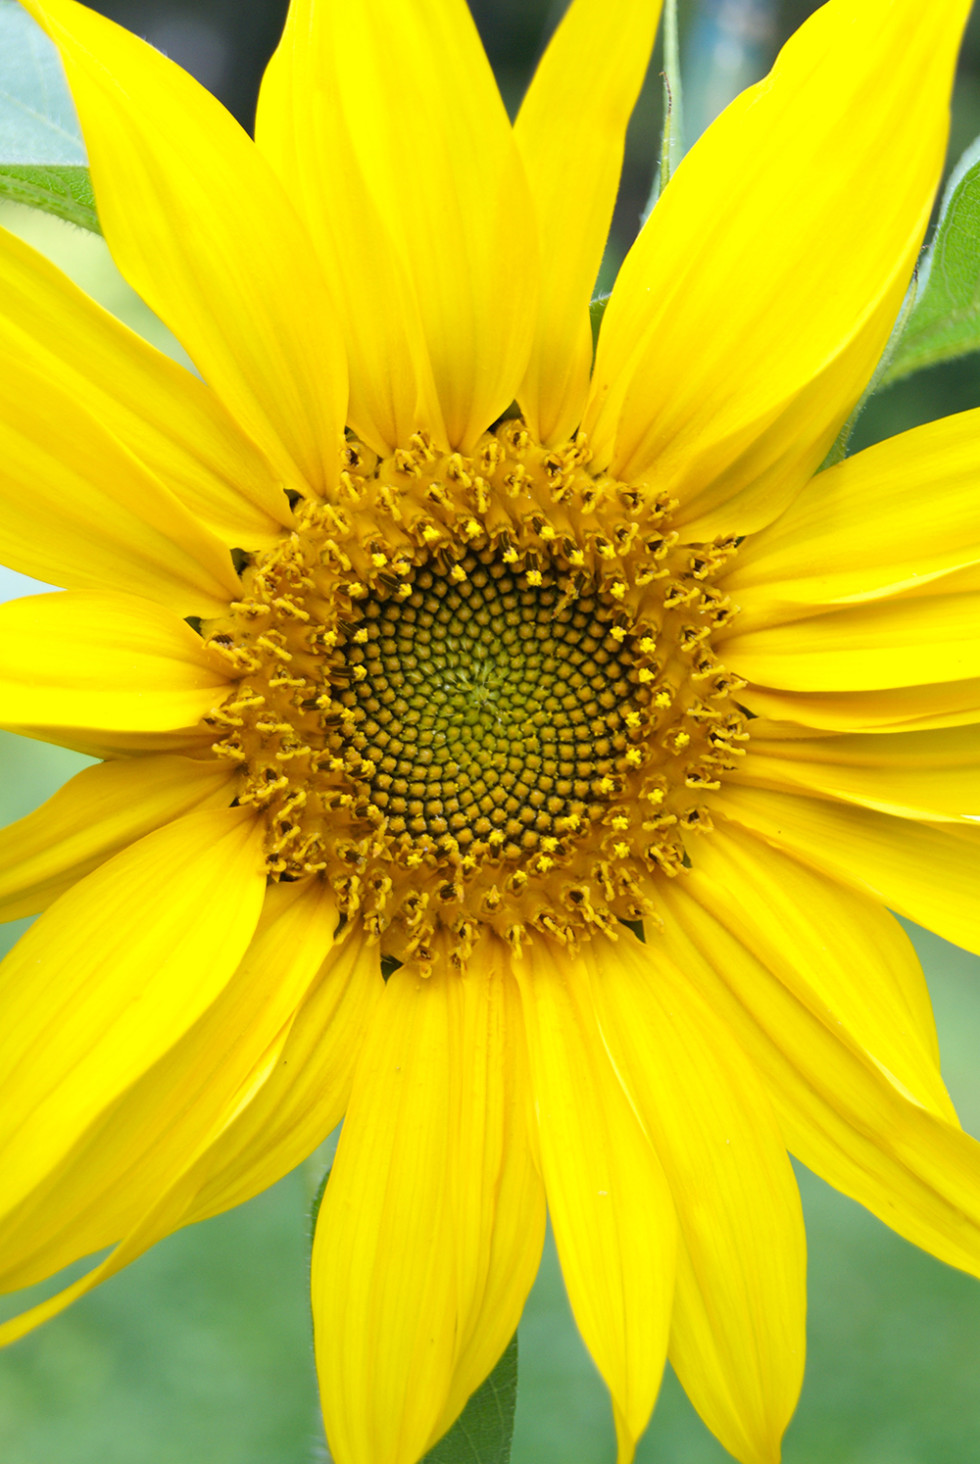 A pretty sunflower surprise!